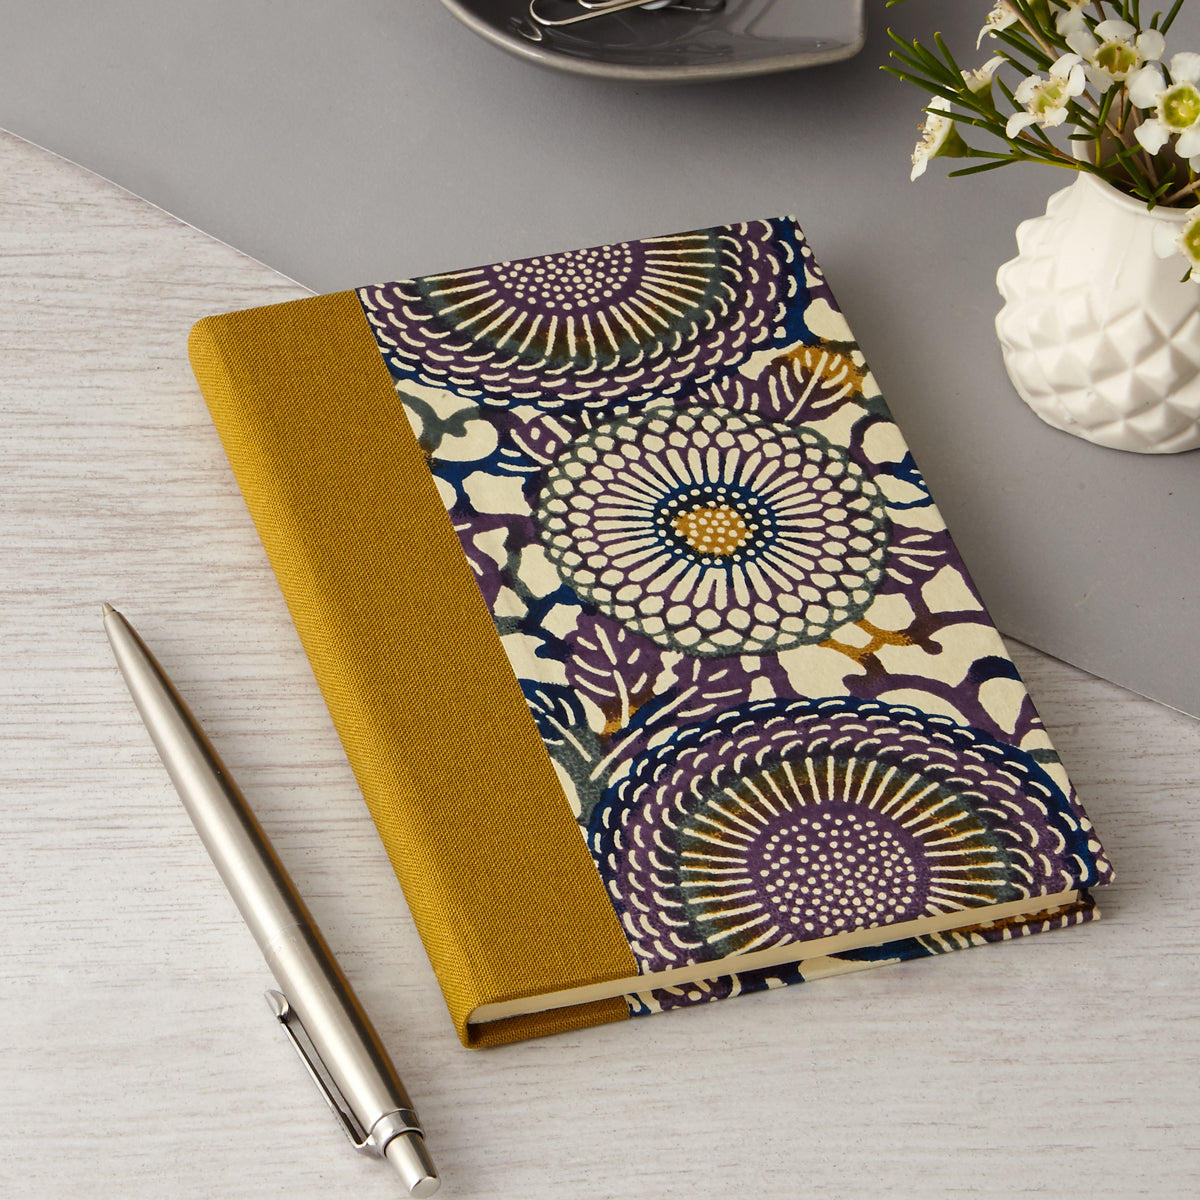 Patterned Journals